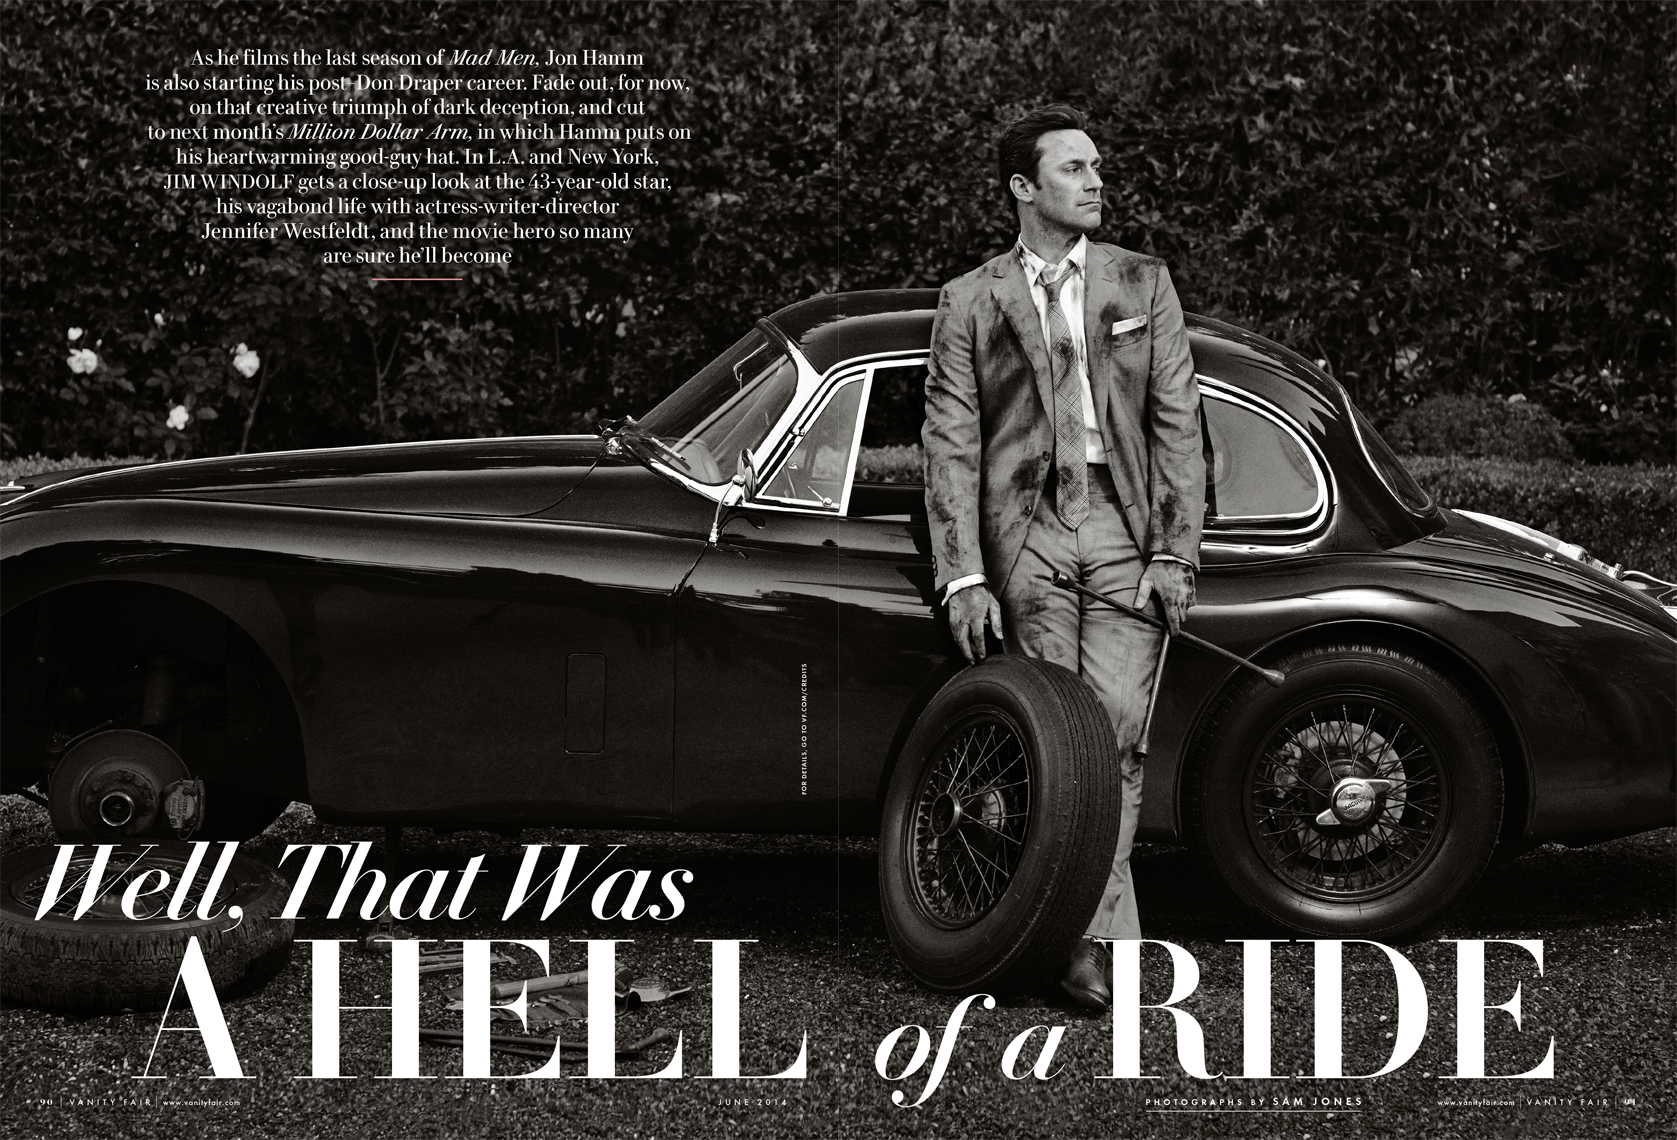 wJonHamm_Car_Spread_Retouched